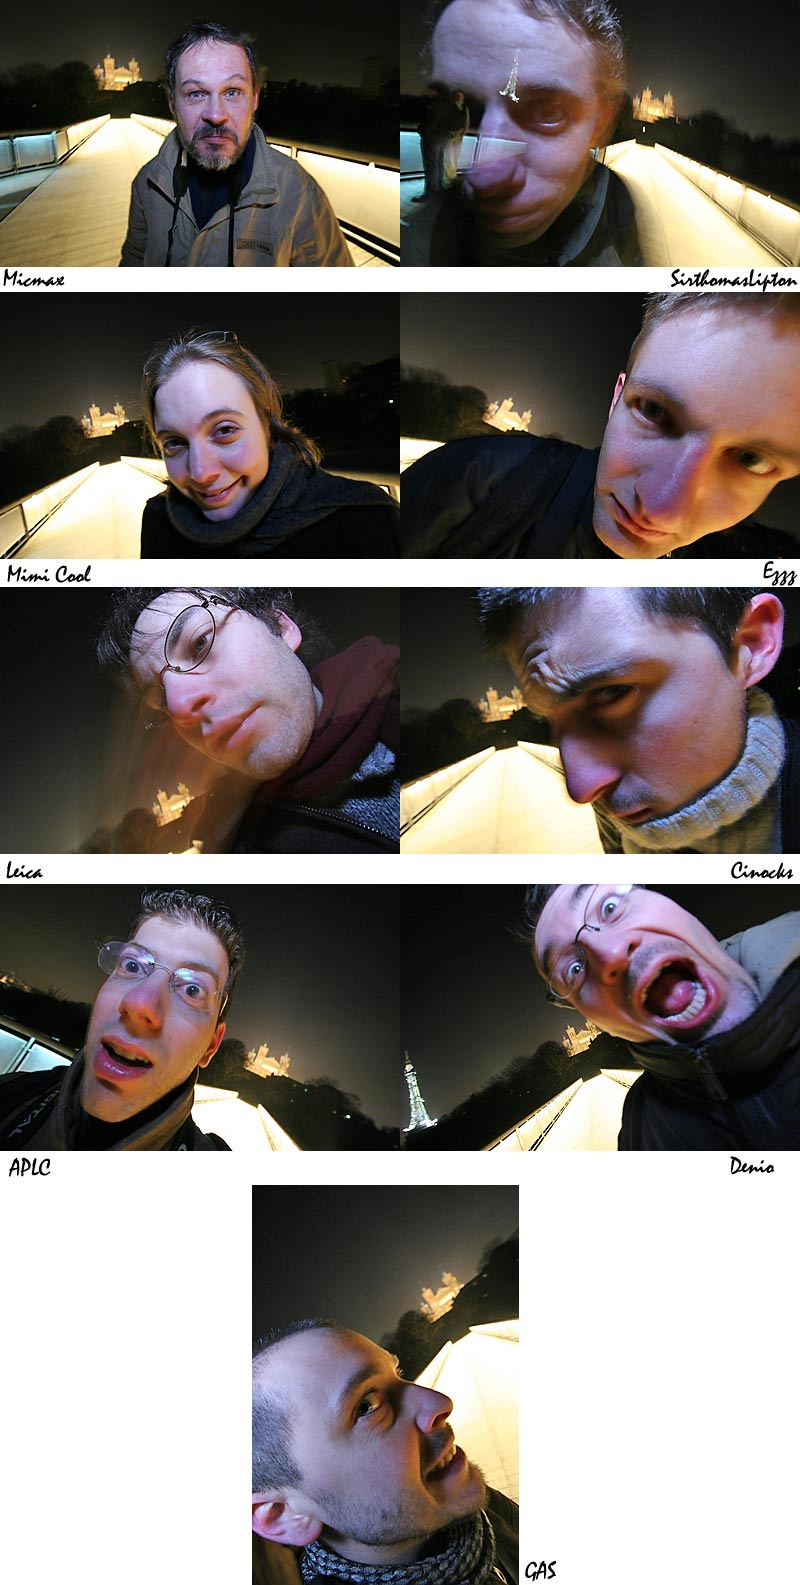 http://cutgroove.free.fr/hfrlyon012005/compoportraitsgdangle.jpg